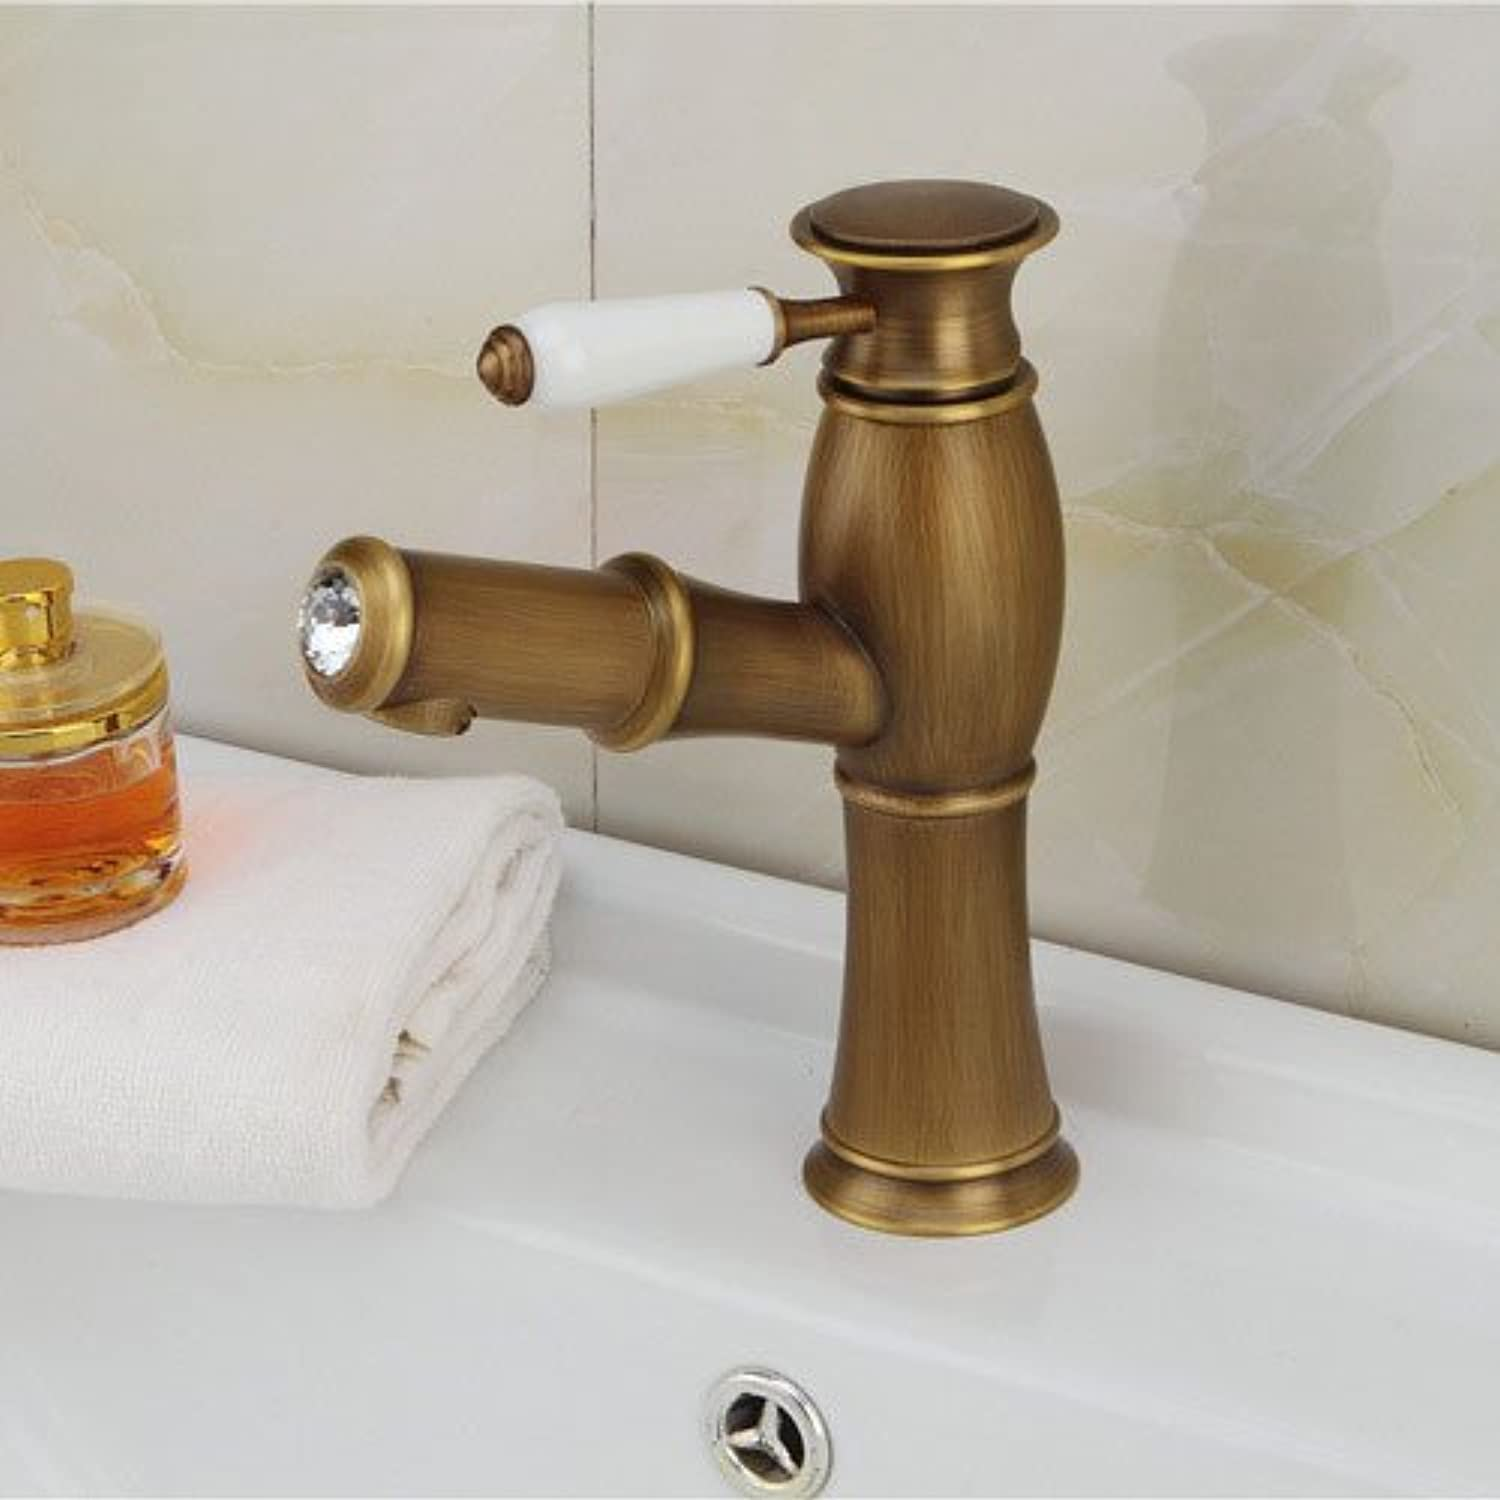 Decorry Antique Copper Drawing Whole Basin Vanity Basin Faucet Hot and Cold Taps Continental B